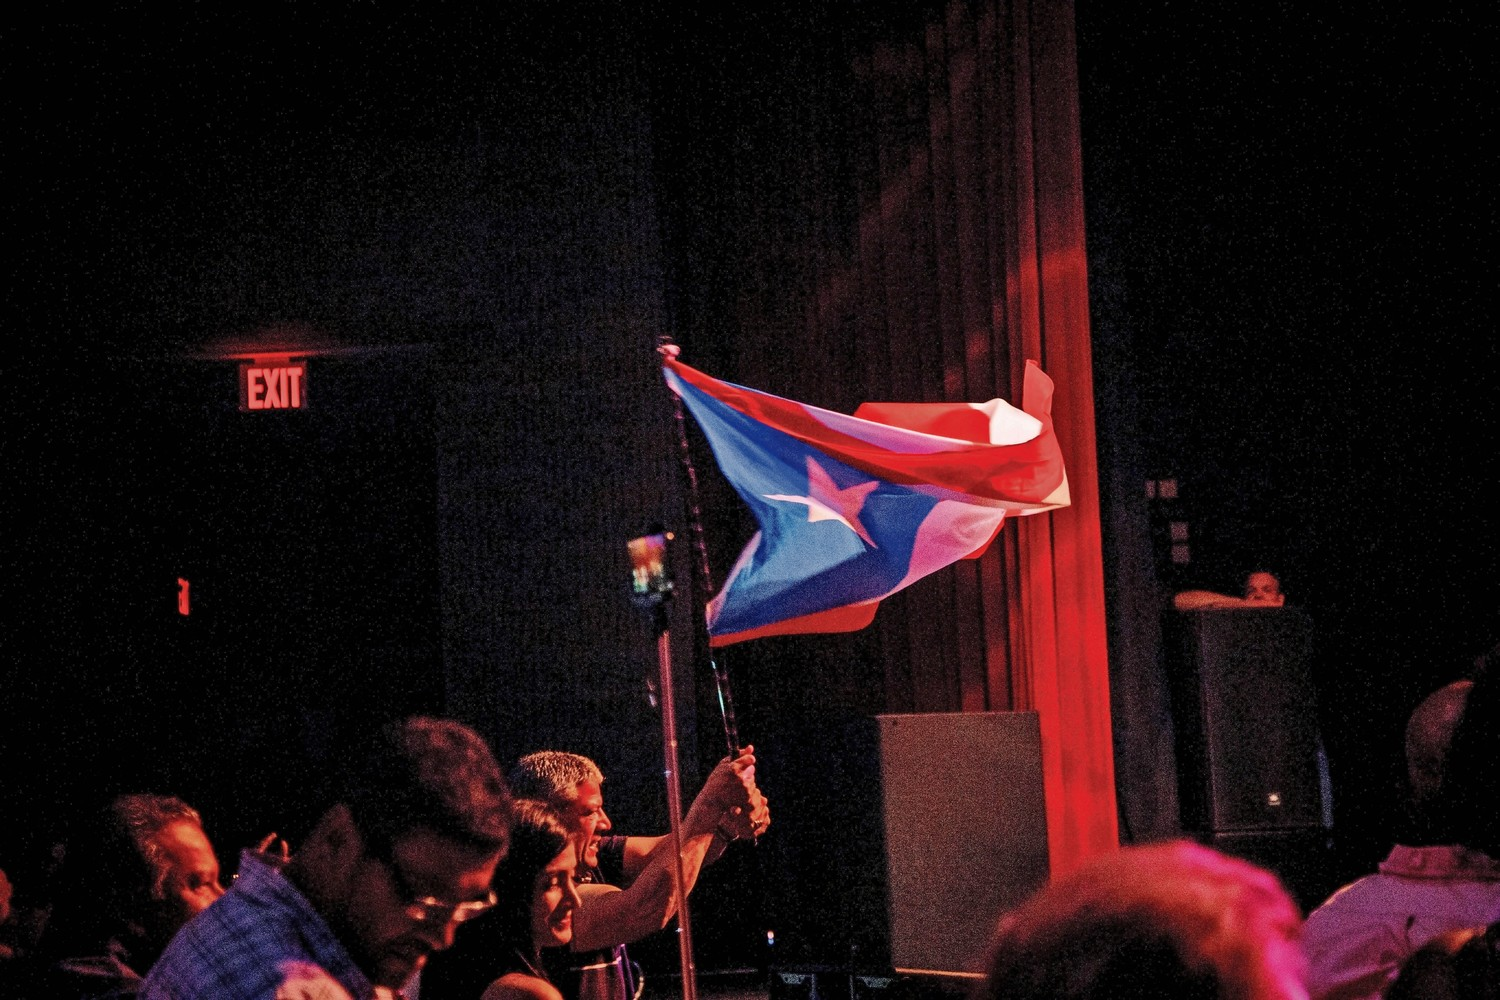 An audience member waves a Puerto Rican flag during La Sonora Ponceña's concert at the Lehman Center for the Performing Arts.